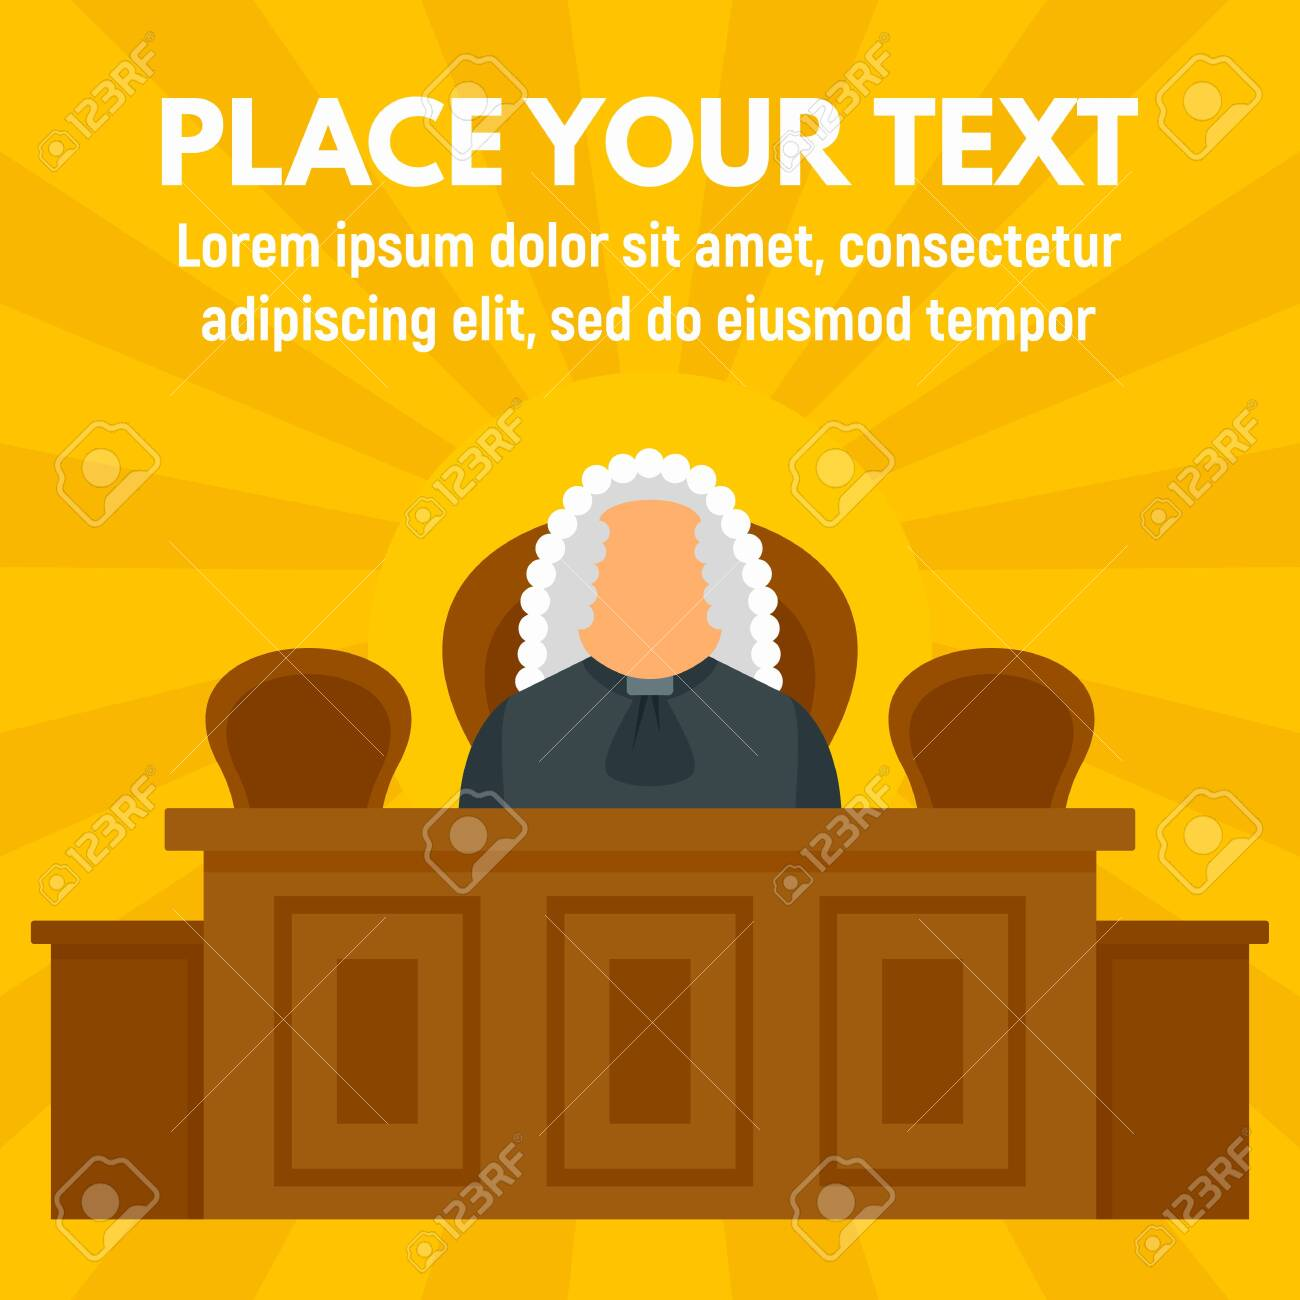 Judge Courthouse Concept Background Flat Style Stock Photo 1300x1300